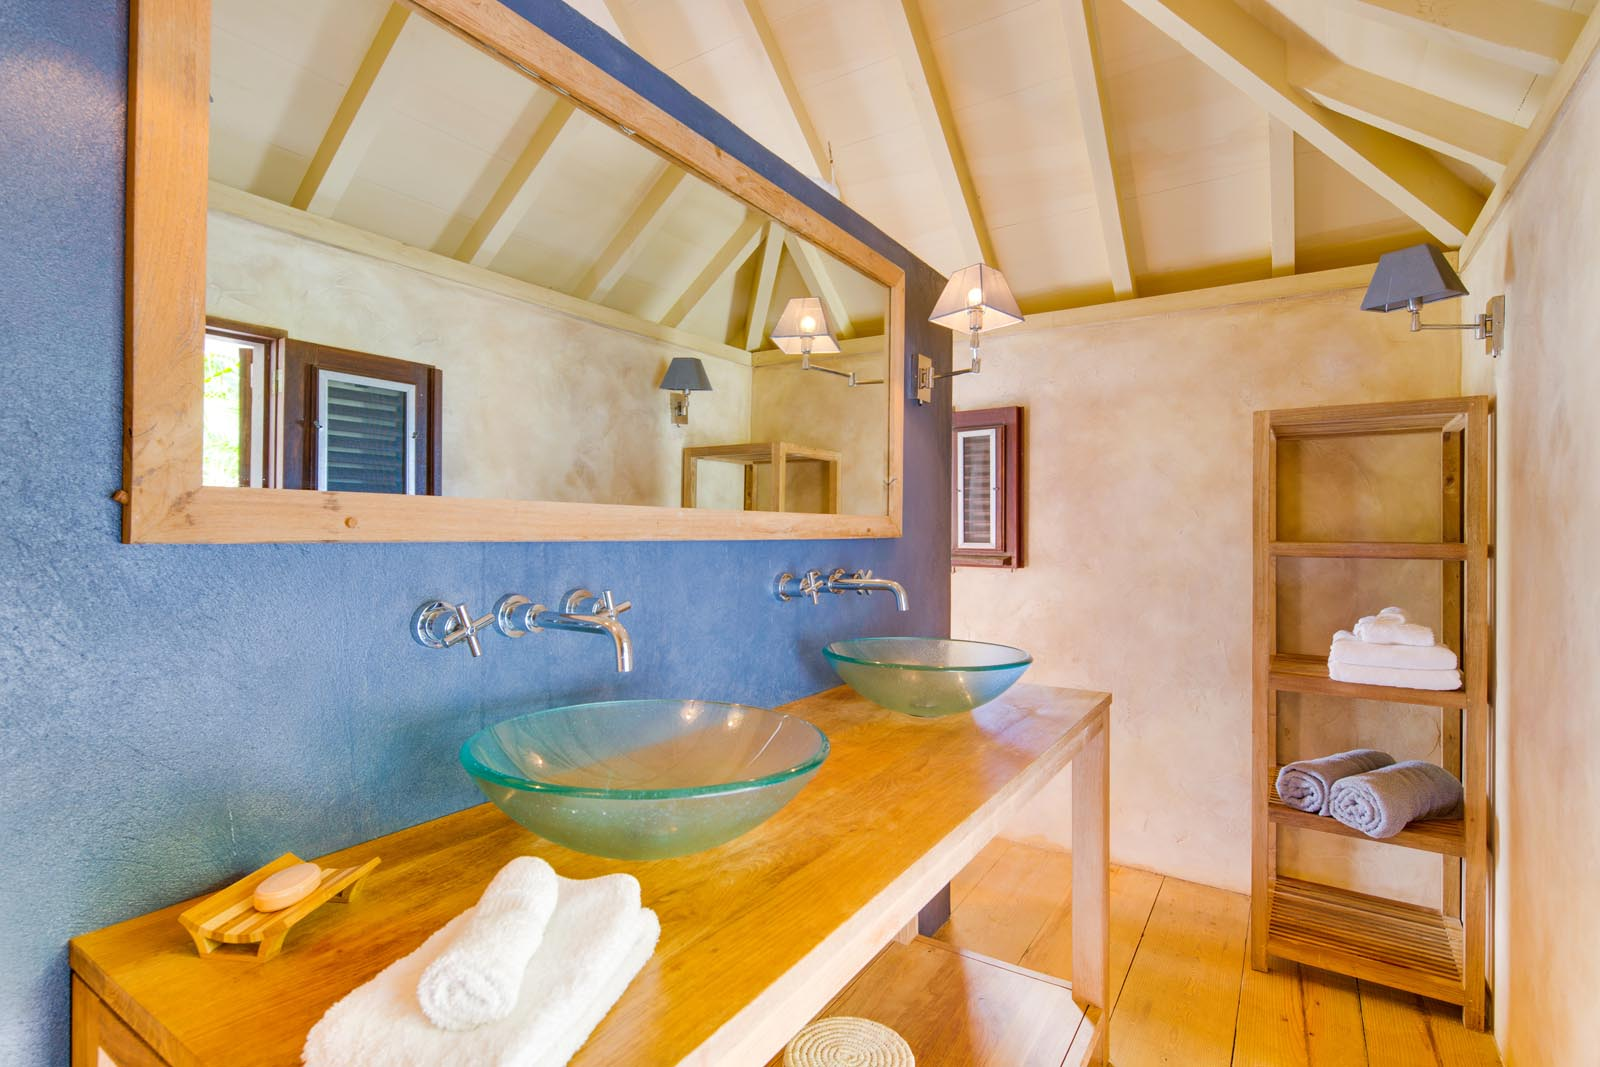 A luxury bathroom at Villa Lama, Flamands Heights, St. Barts, Caribbean.